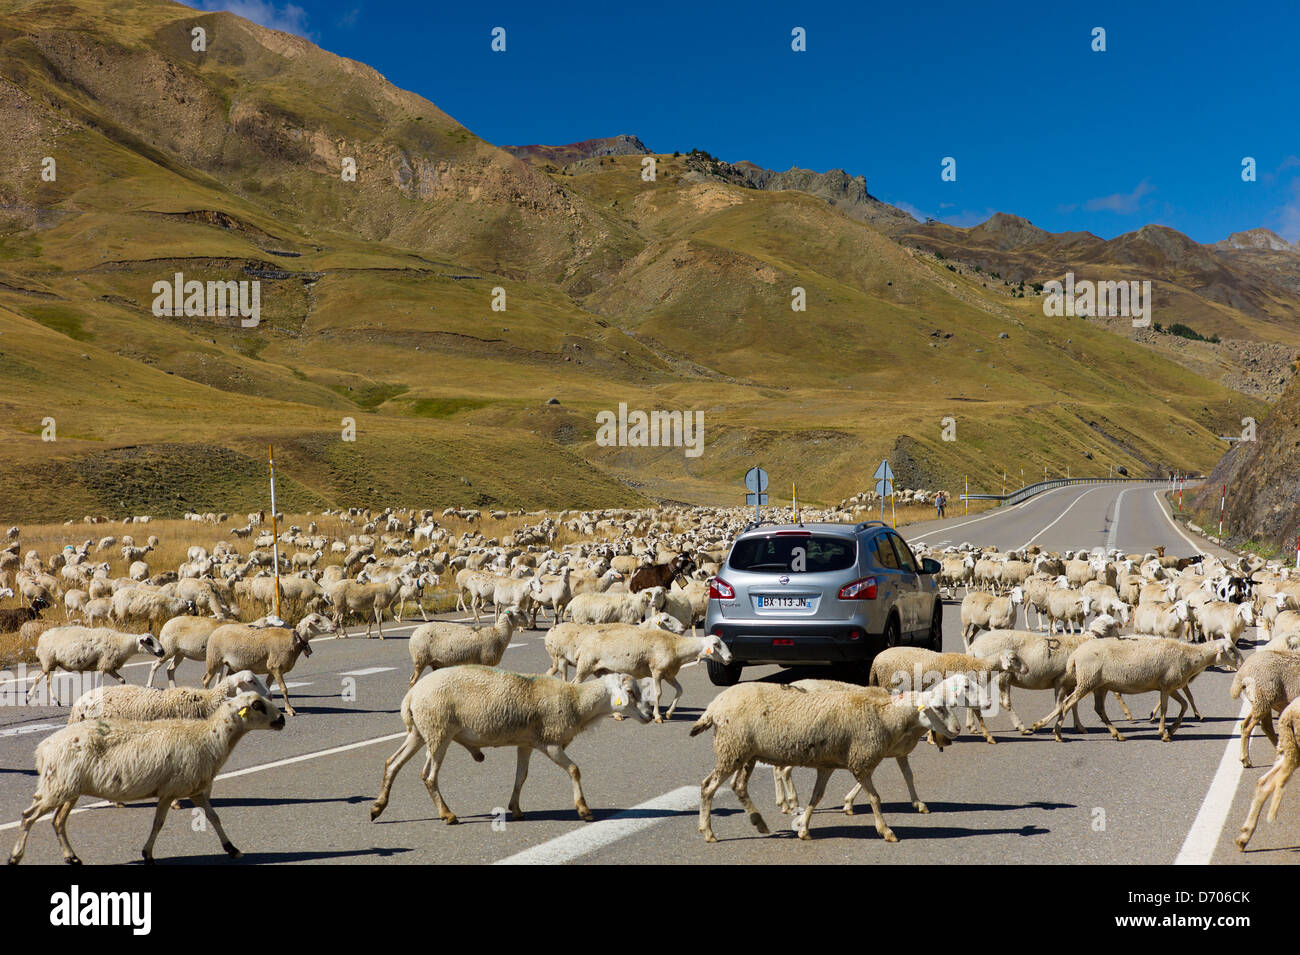 Sheep and goats roaming around Nissan Qashqai 4-wheel drive vehicle on road in Val de Tena in the Pyrenees Northern - Stock Image